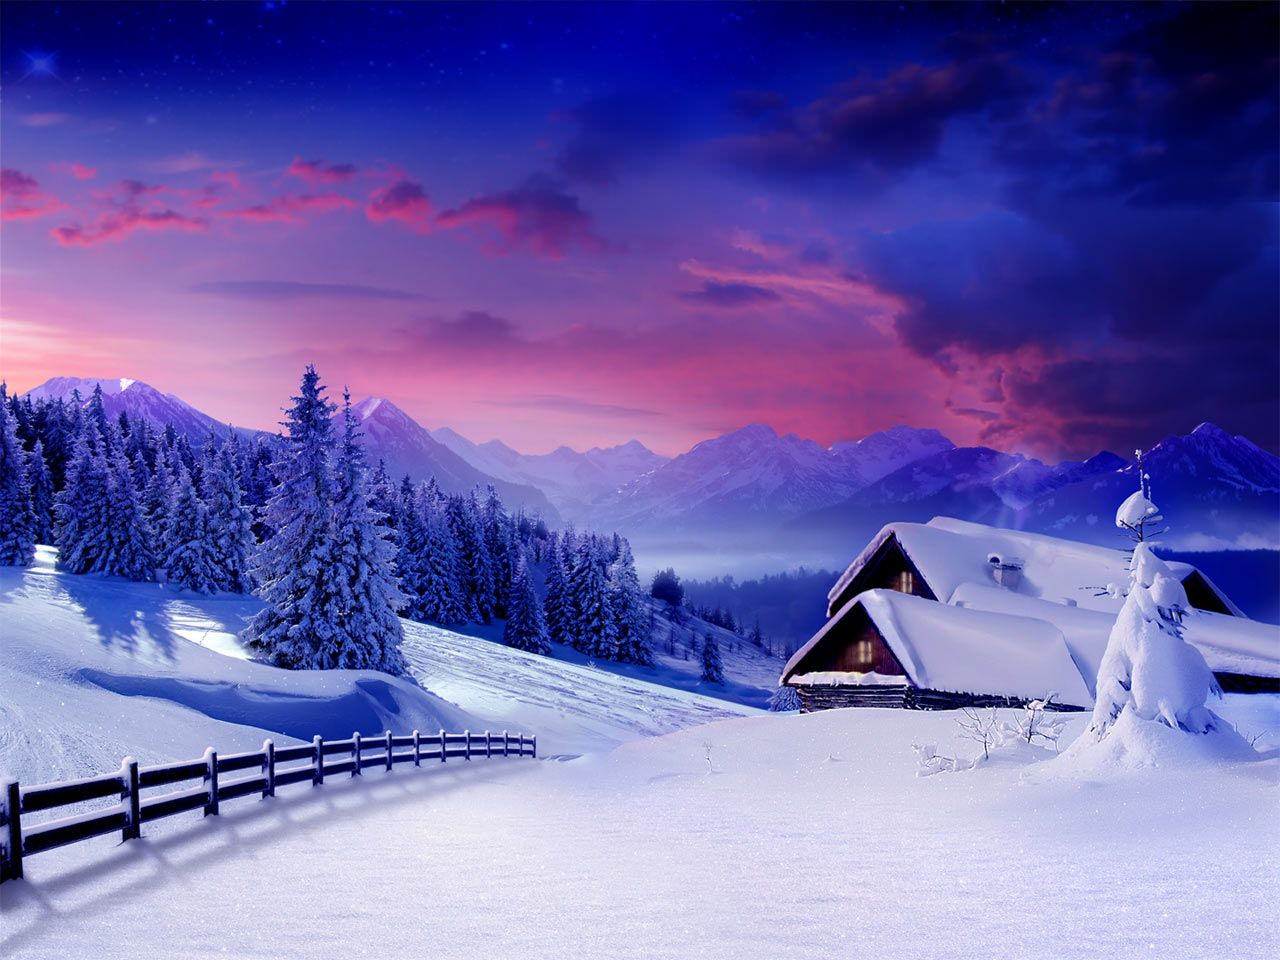 Snow Covered House Wallpaper